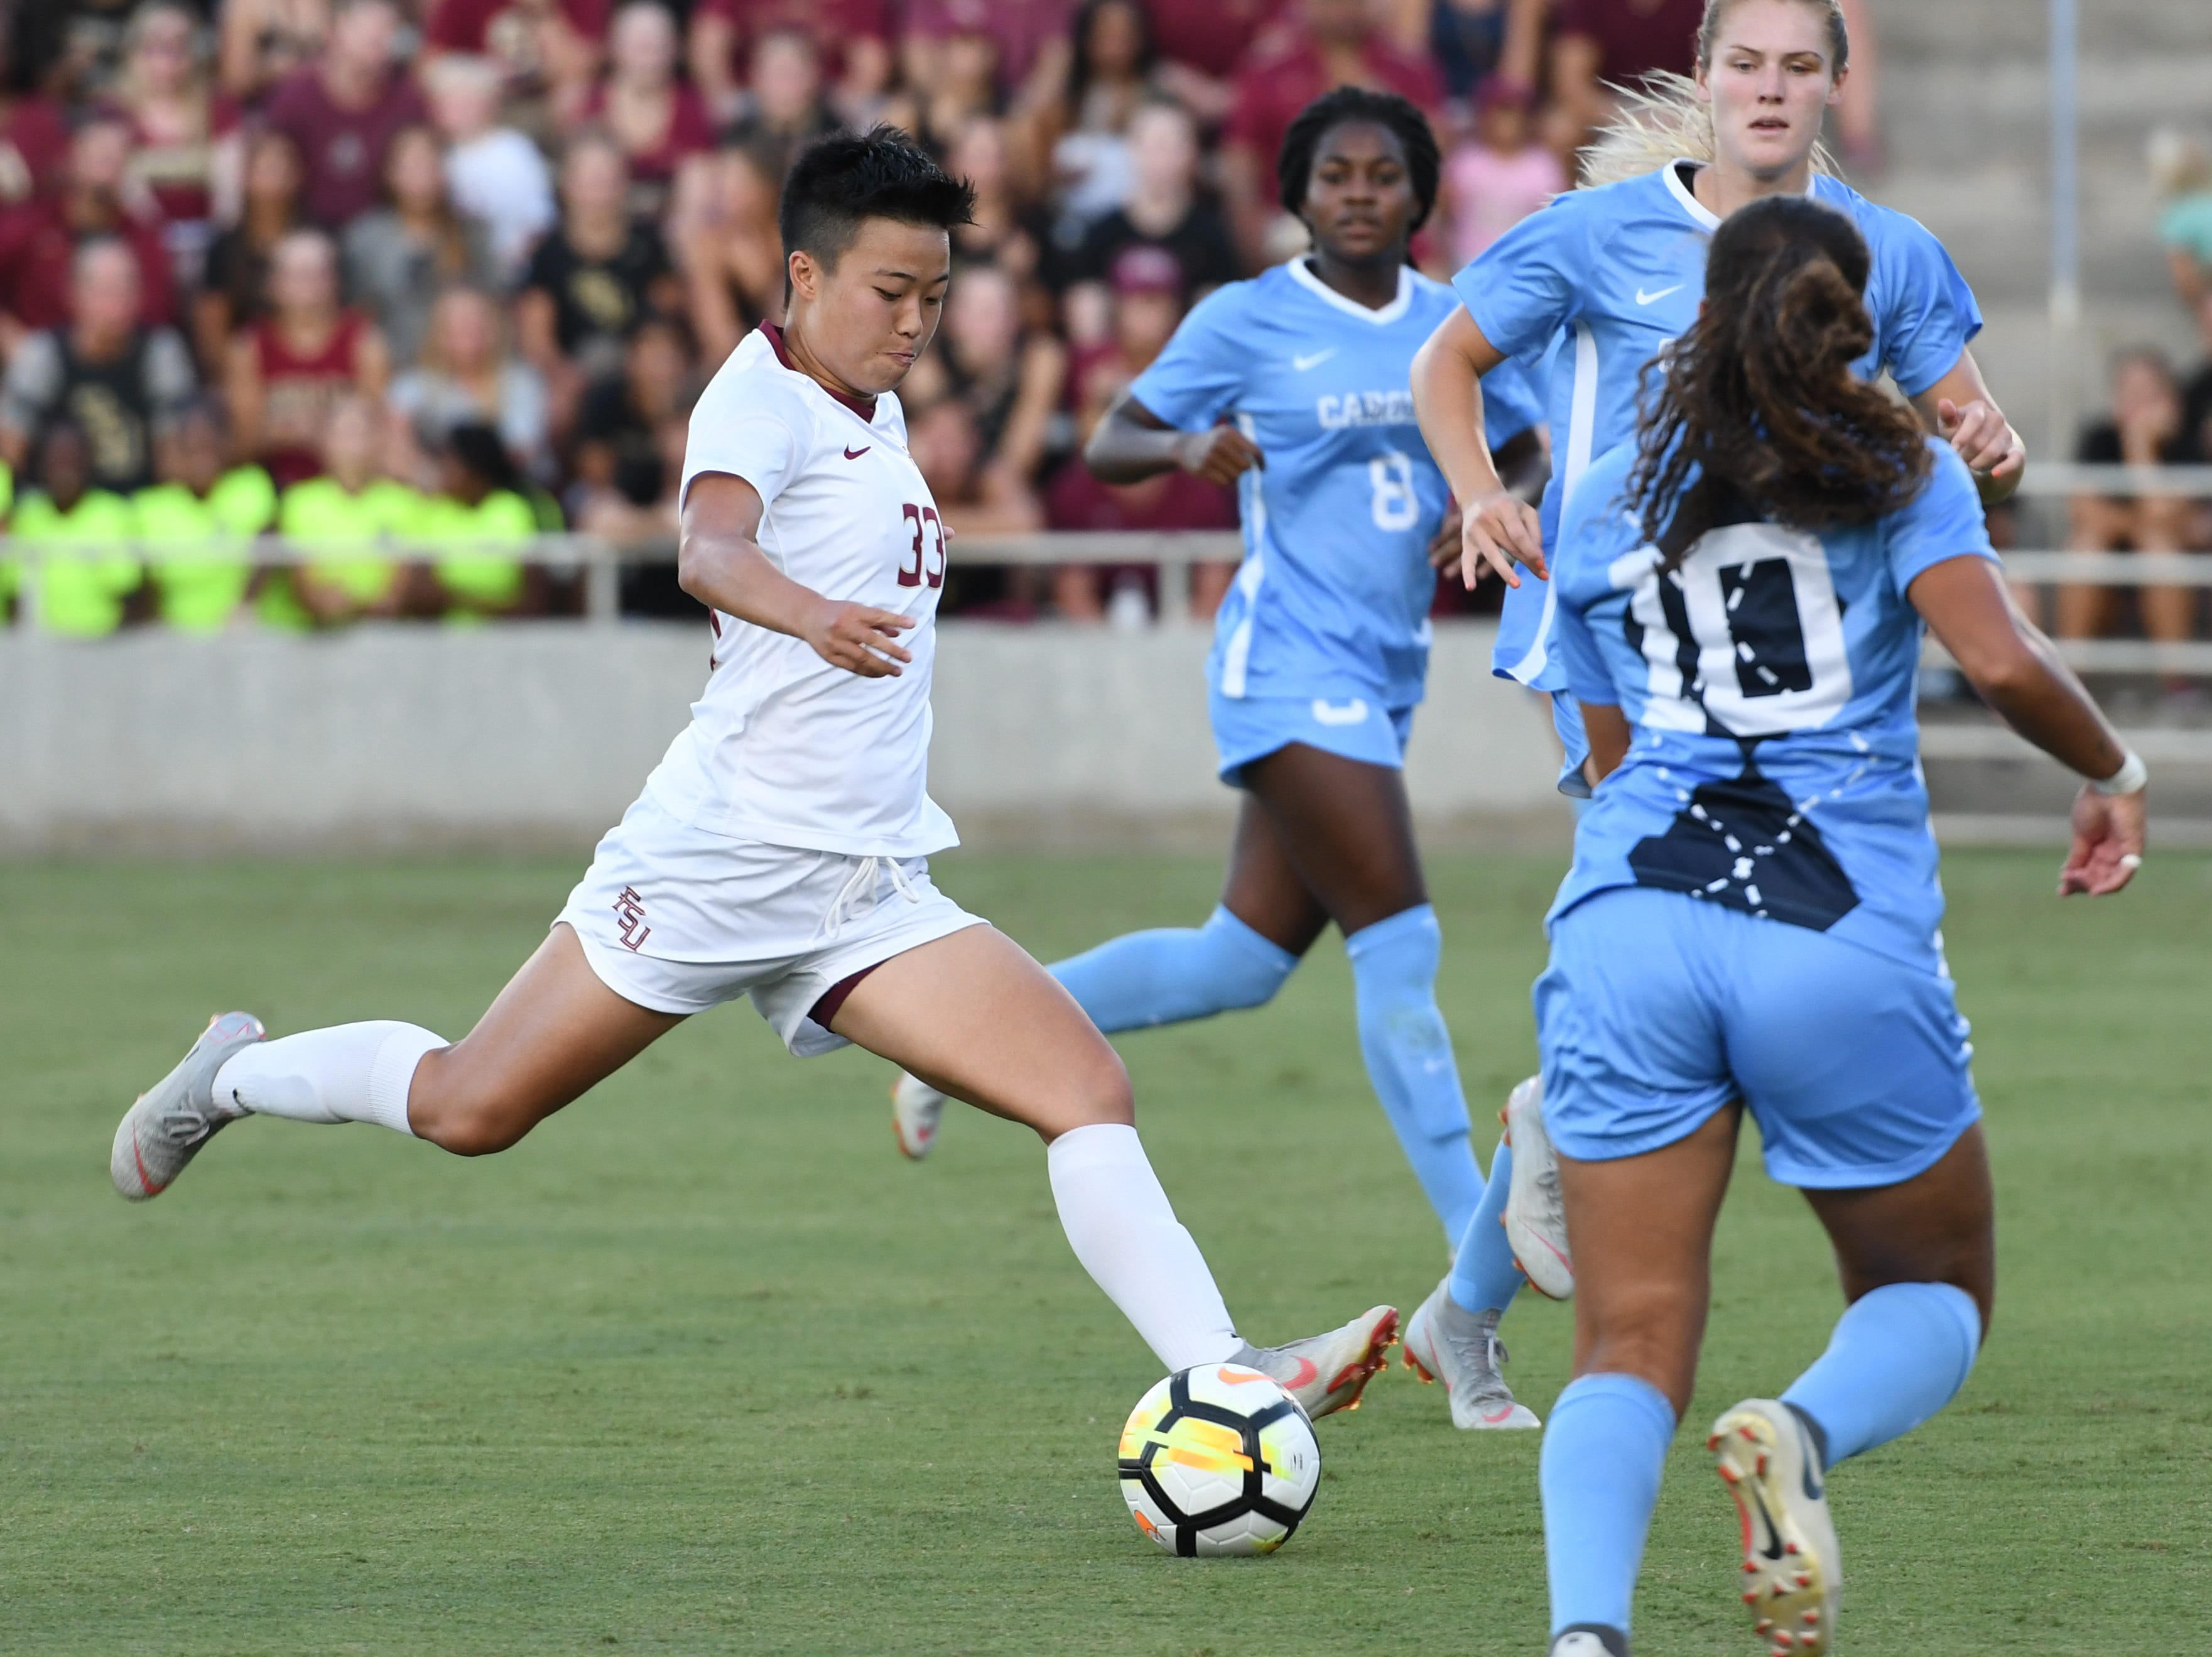 FSU freshman midfielder Yujie Zhao (33) taking a shot in the first half of FSU's game against UNC on September 14th at the Seminole Soccer Complex.